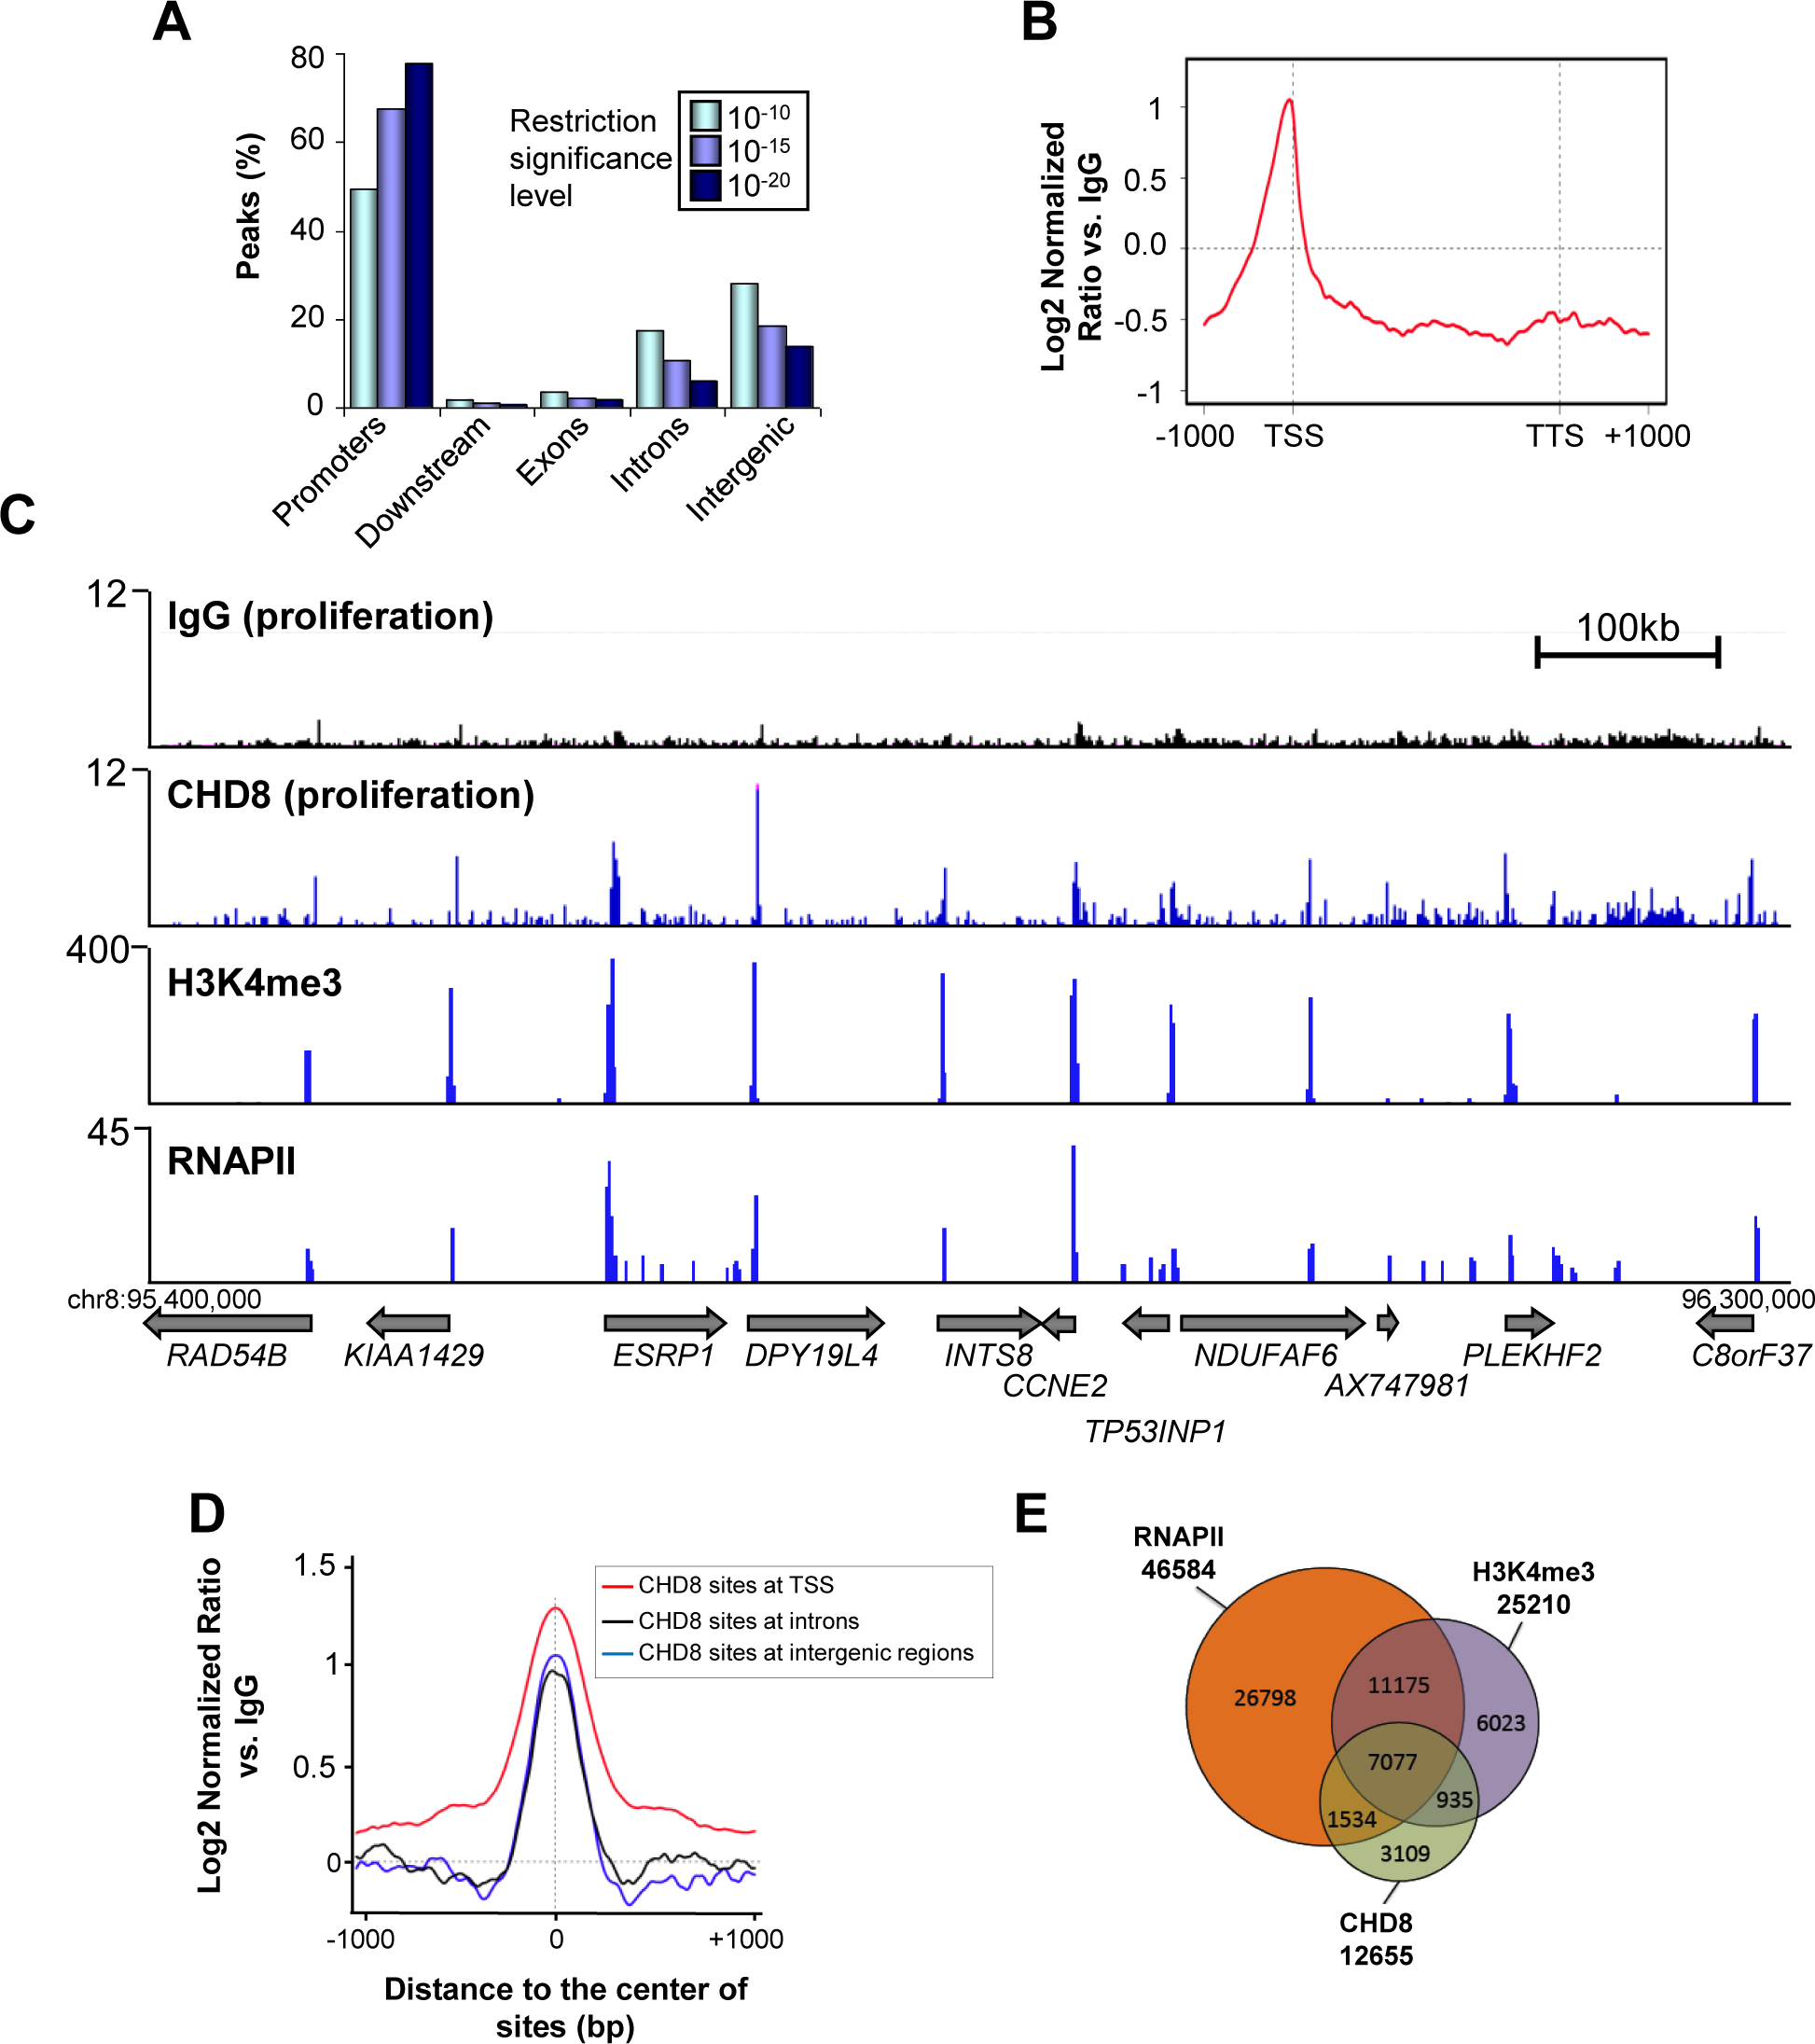 Genome-wide analysis of CHD8 binding sites under normal proliferation conditions.